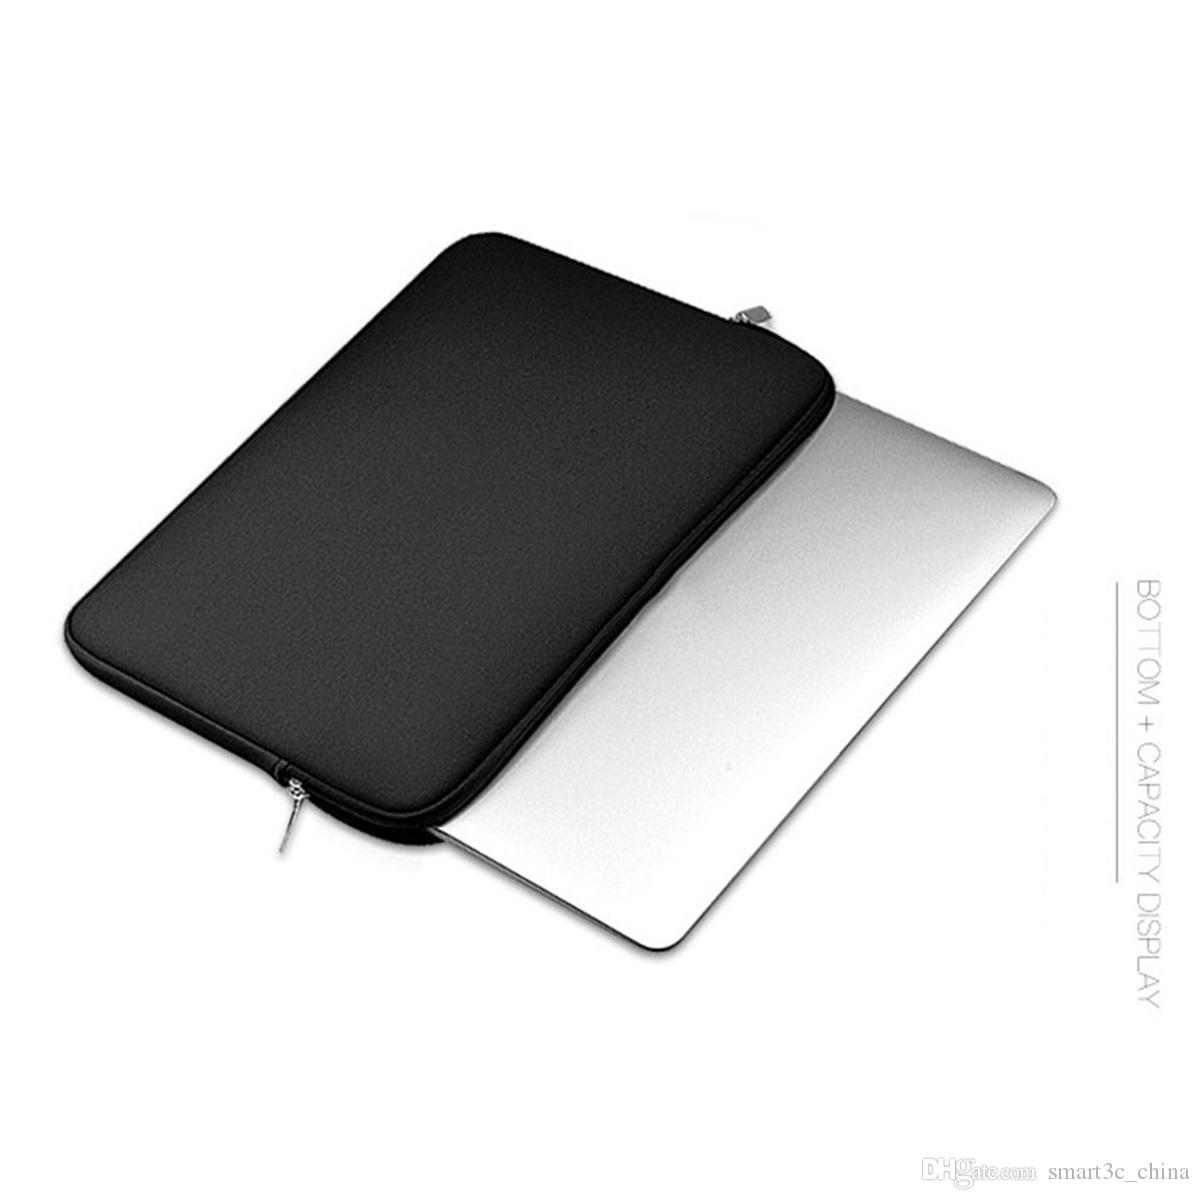 Style1 Laptop Sleeve 14, 15.6 Inch Notebook Case 13.3 Macbook Pro 13 Case Laptop Cases 11.13, 15 Inch Protective Case